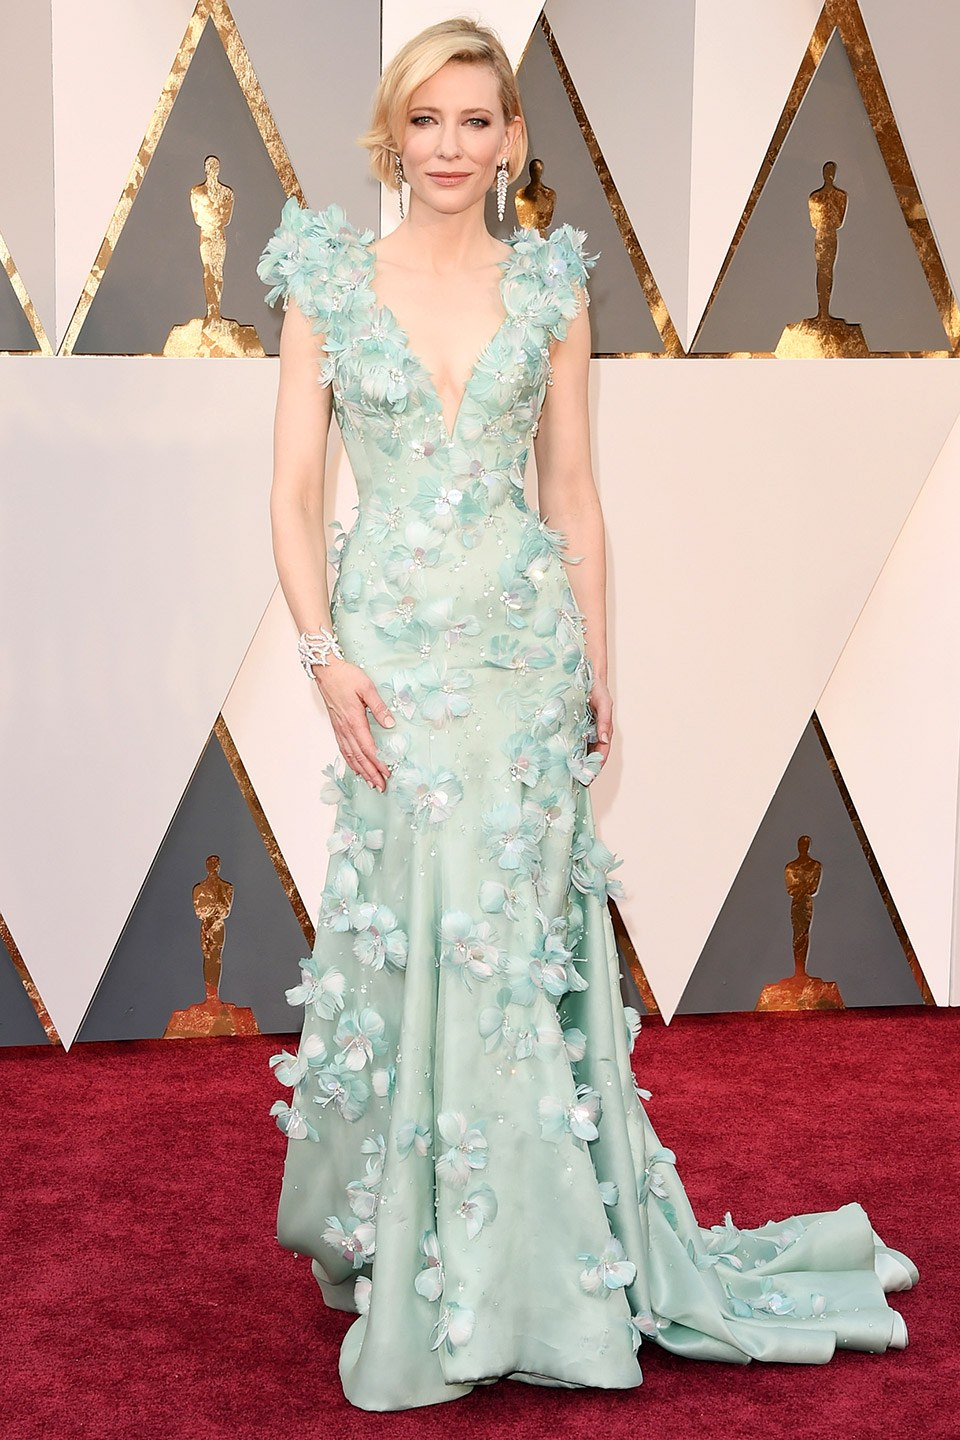 oscars-red-carpet-2016-best-dressed-cate-blanchett Best 7 Solar System Project Ideas